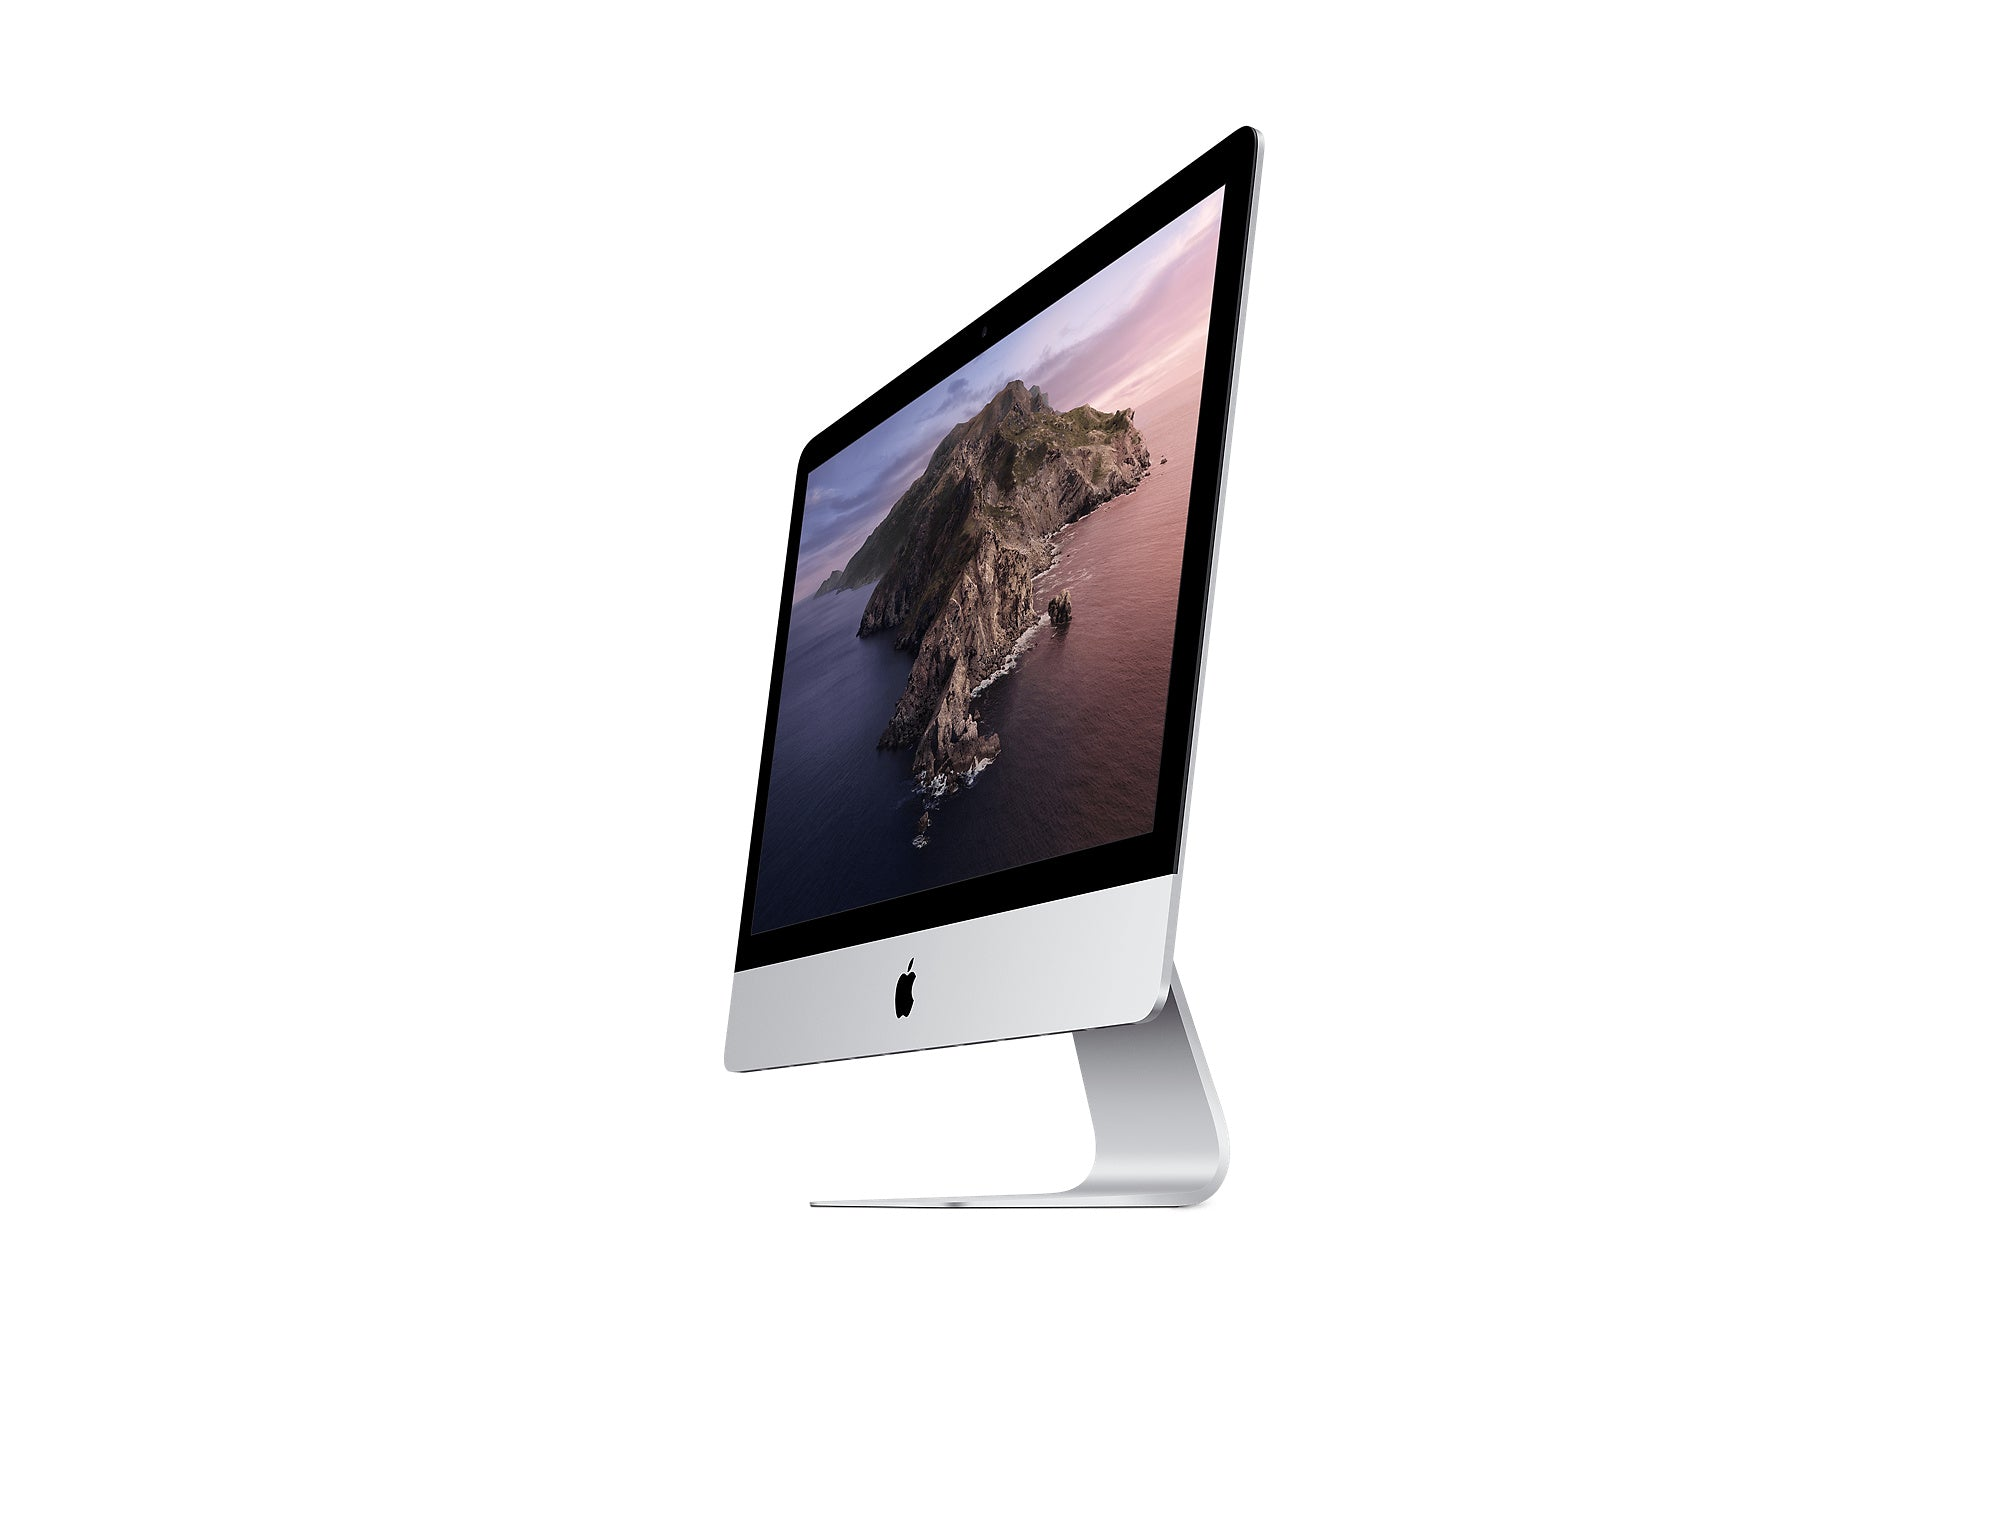 "APPLE IMAC 18,2 EX-LEASE INTEL CORE I5-7400 3.00 GHZ 8GB RAM 1TB HDD RADEON RX 555 2GB 4K 21.5"" WEBCAM WITH APPLE WIRELESS KEYBOARD AND MOUSE"